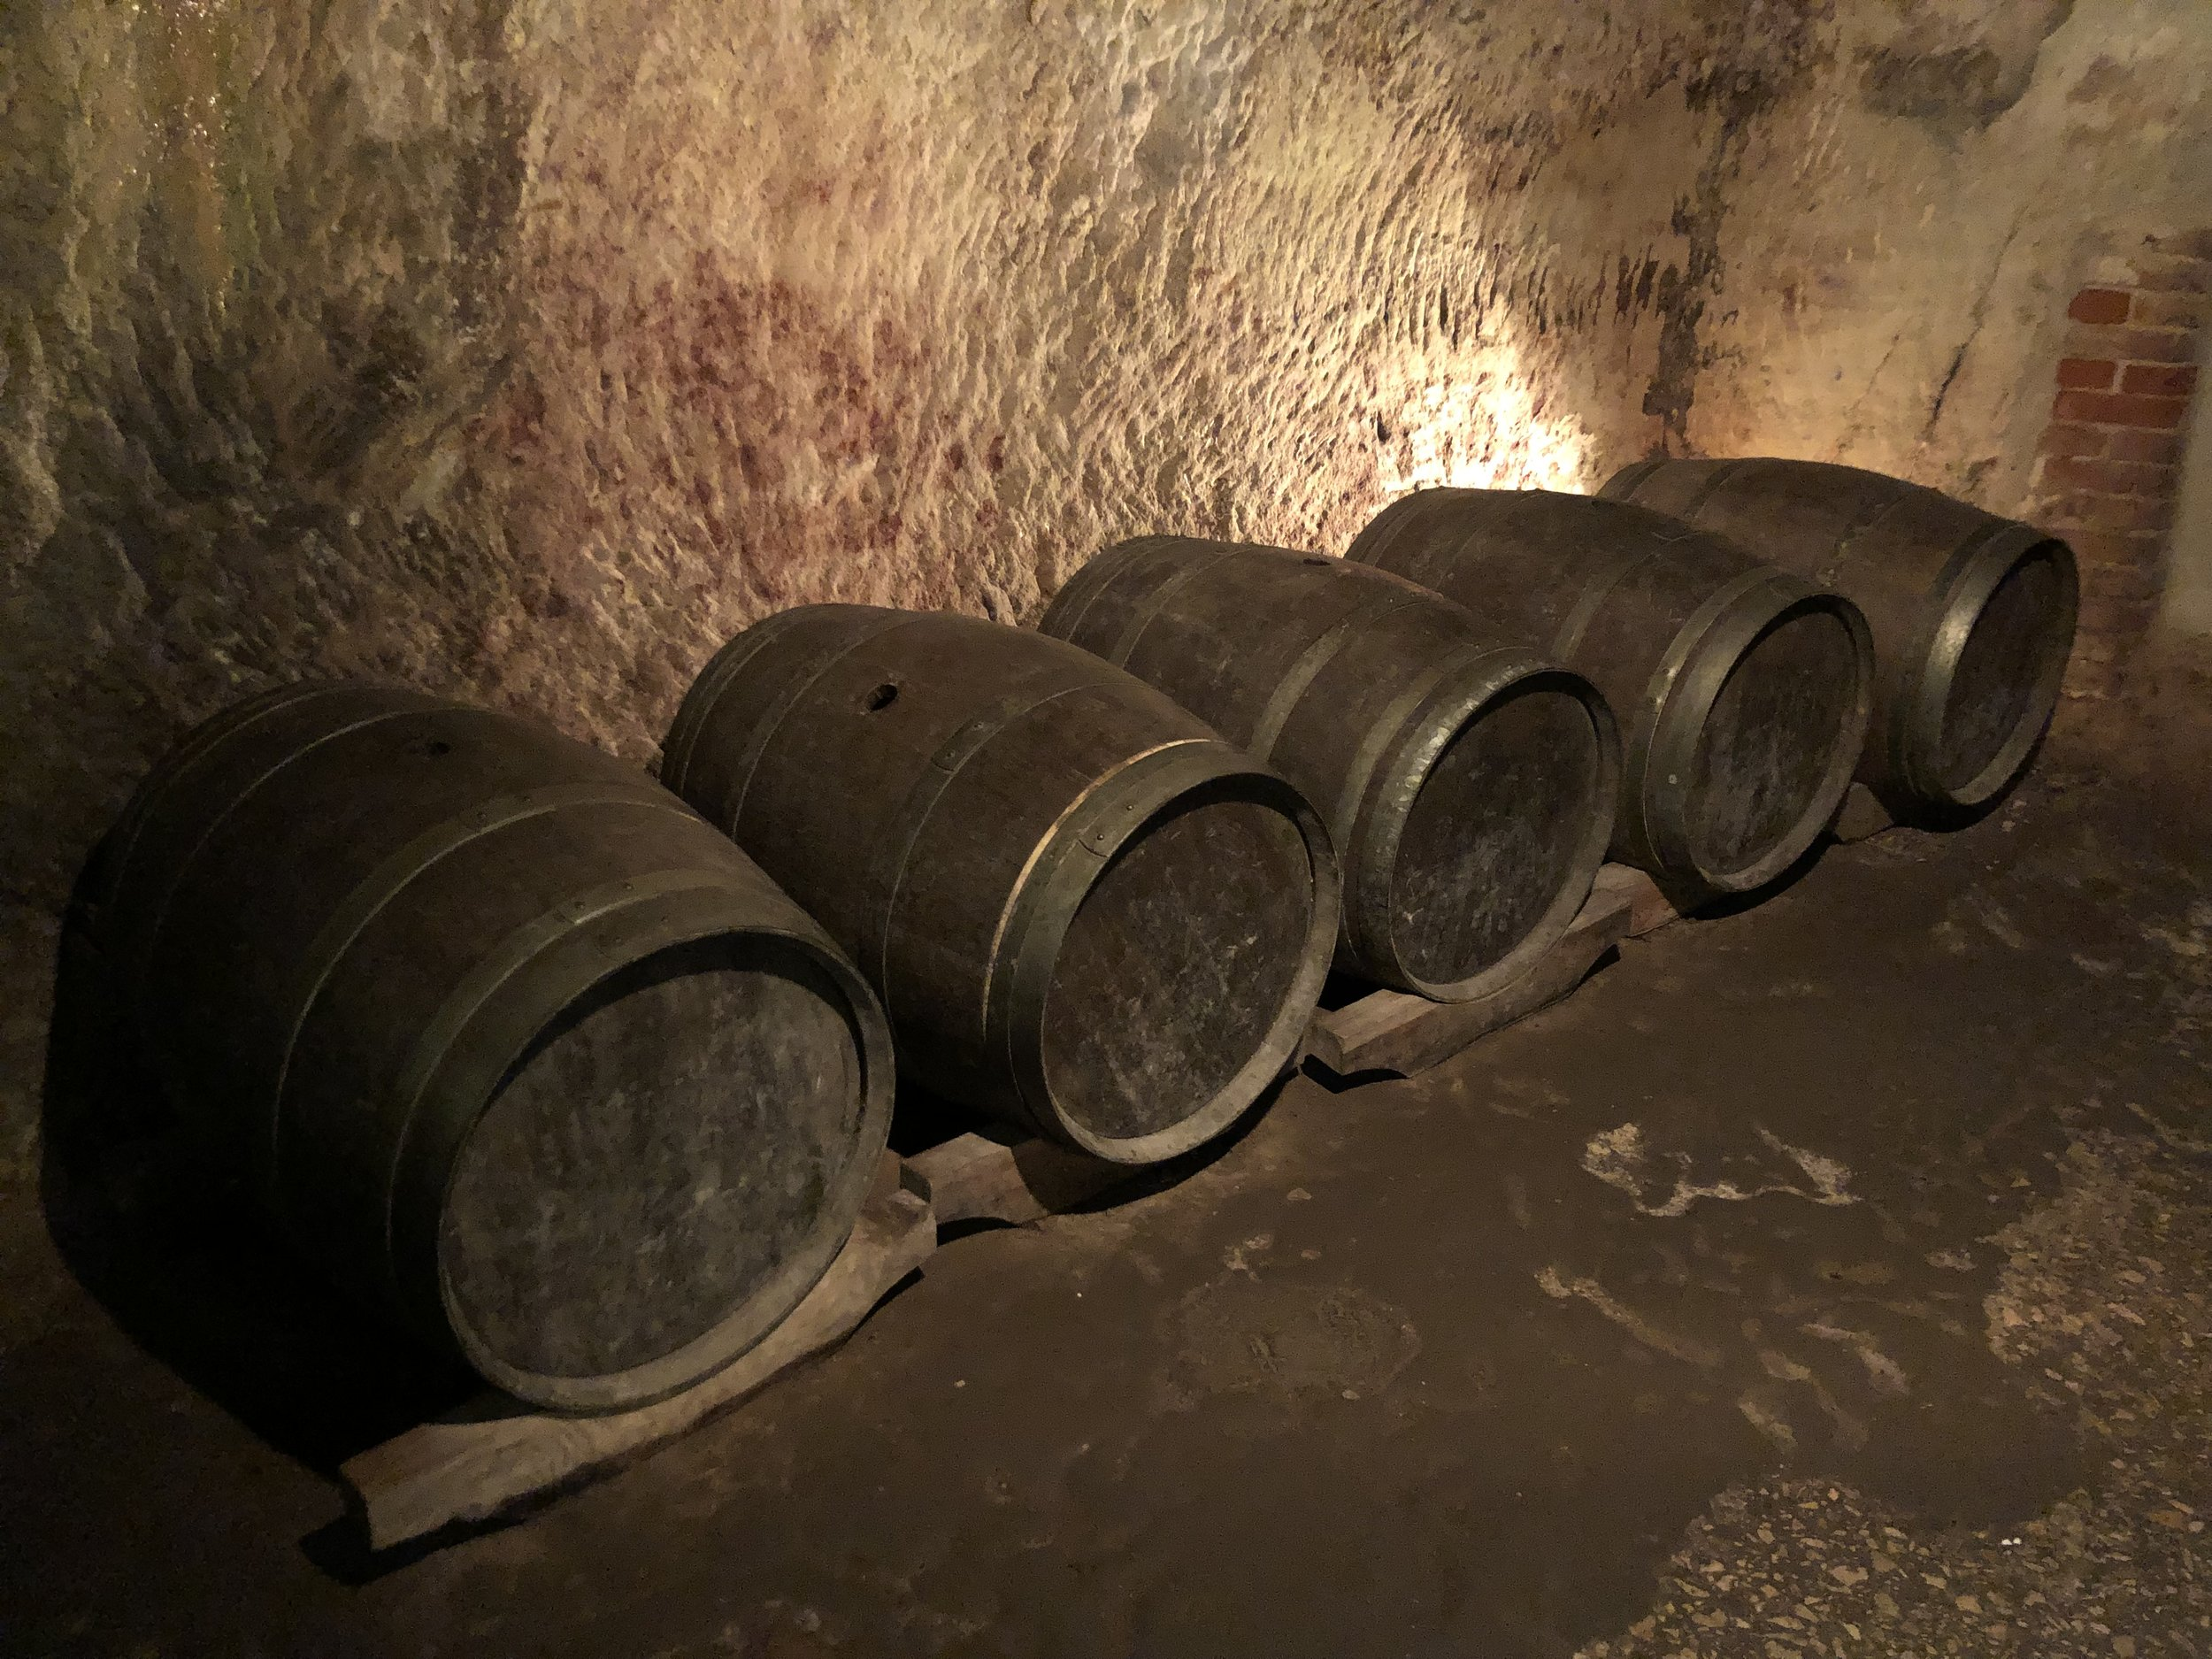 Years ago local brewers used the caverns under the Old City in Nuremberg to brew their beers. One of these breweries is still using them for beer brandy production.